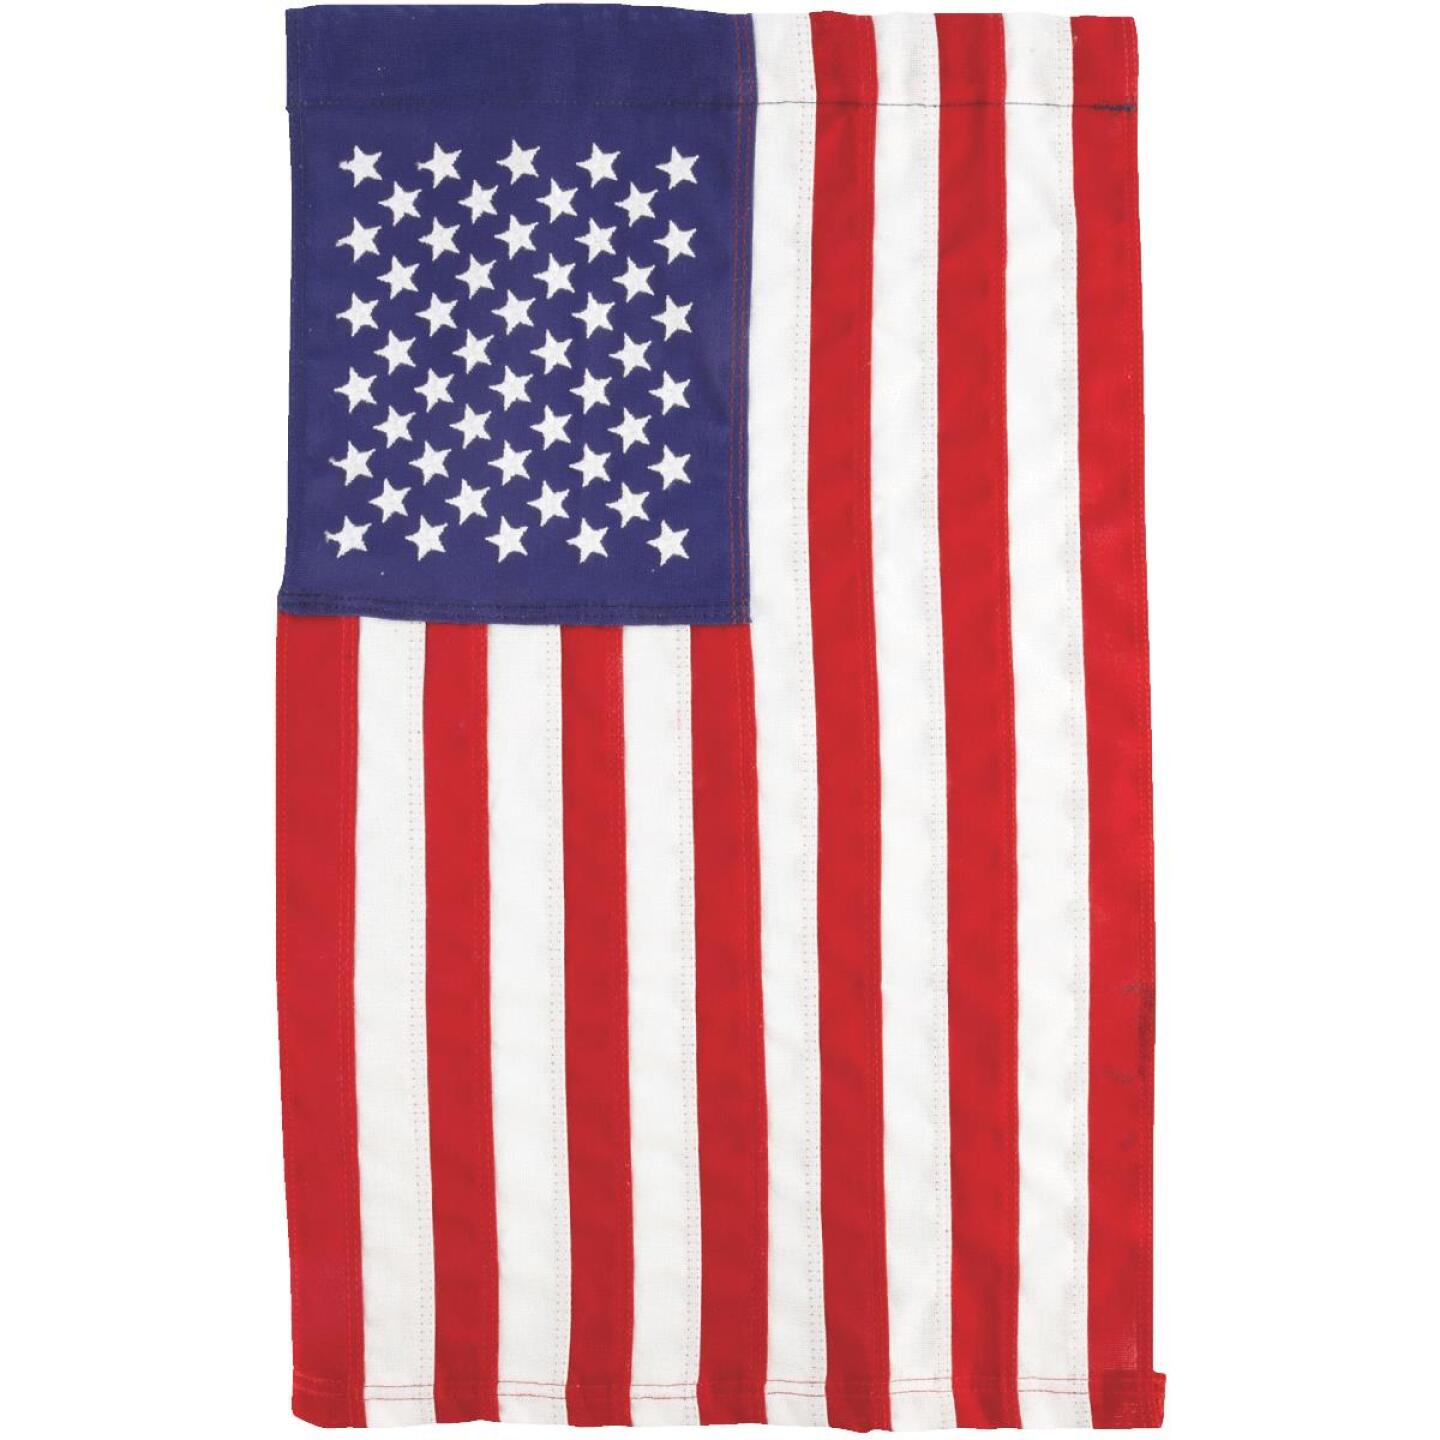 Valley Forge 1 Ft. x 1.5 Ft. Cotton Garden American Flag Image 2